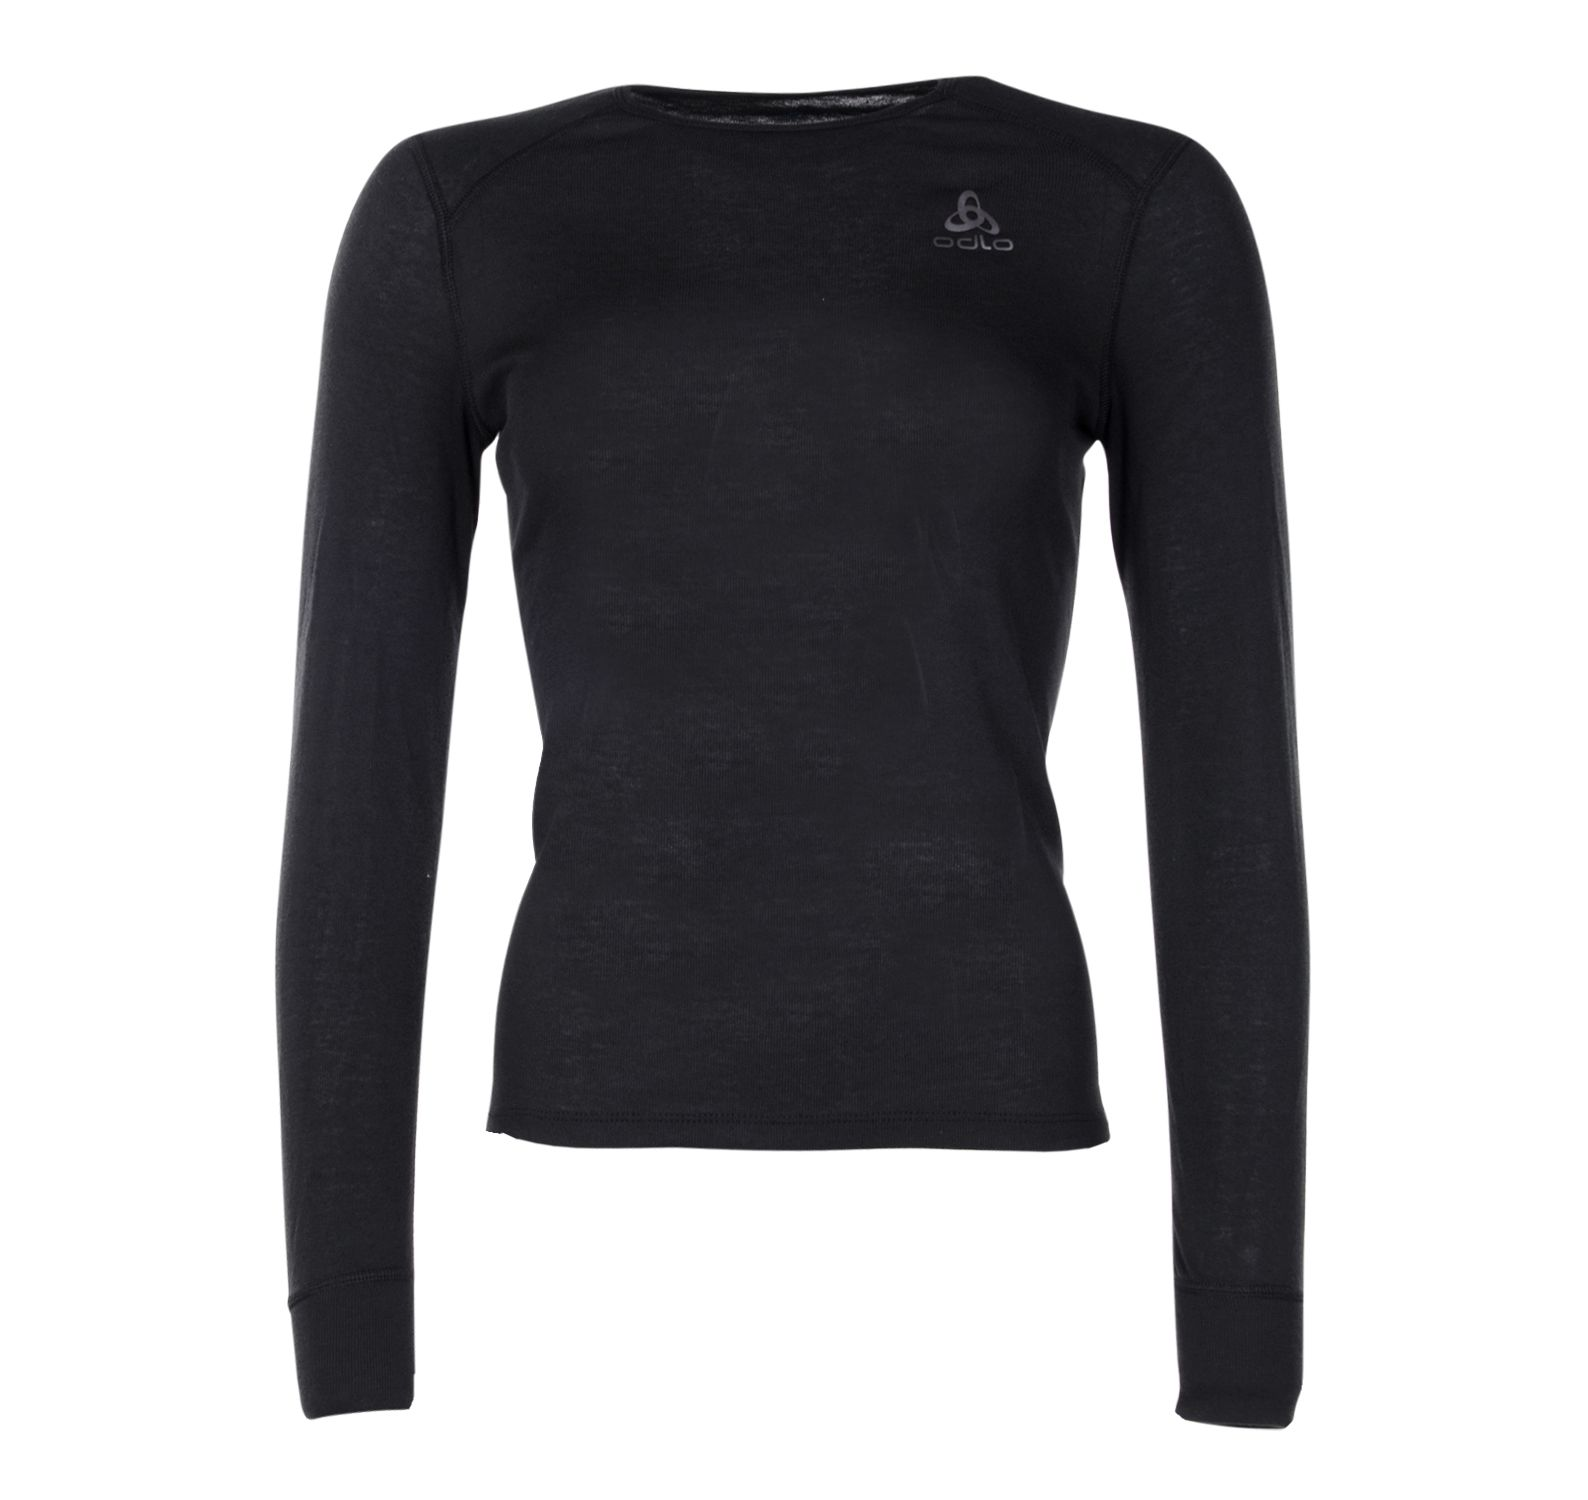 W Bl Top Cn L/S Active Warm Ec, Black, L,  Underställströjor